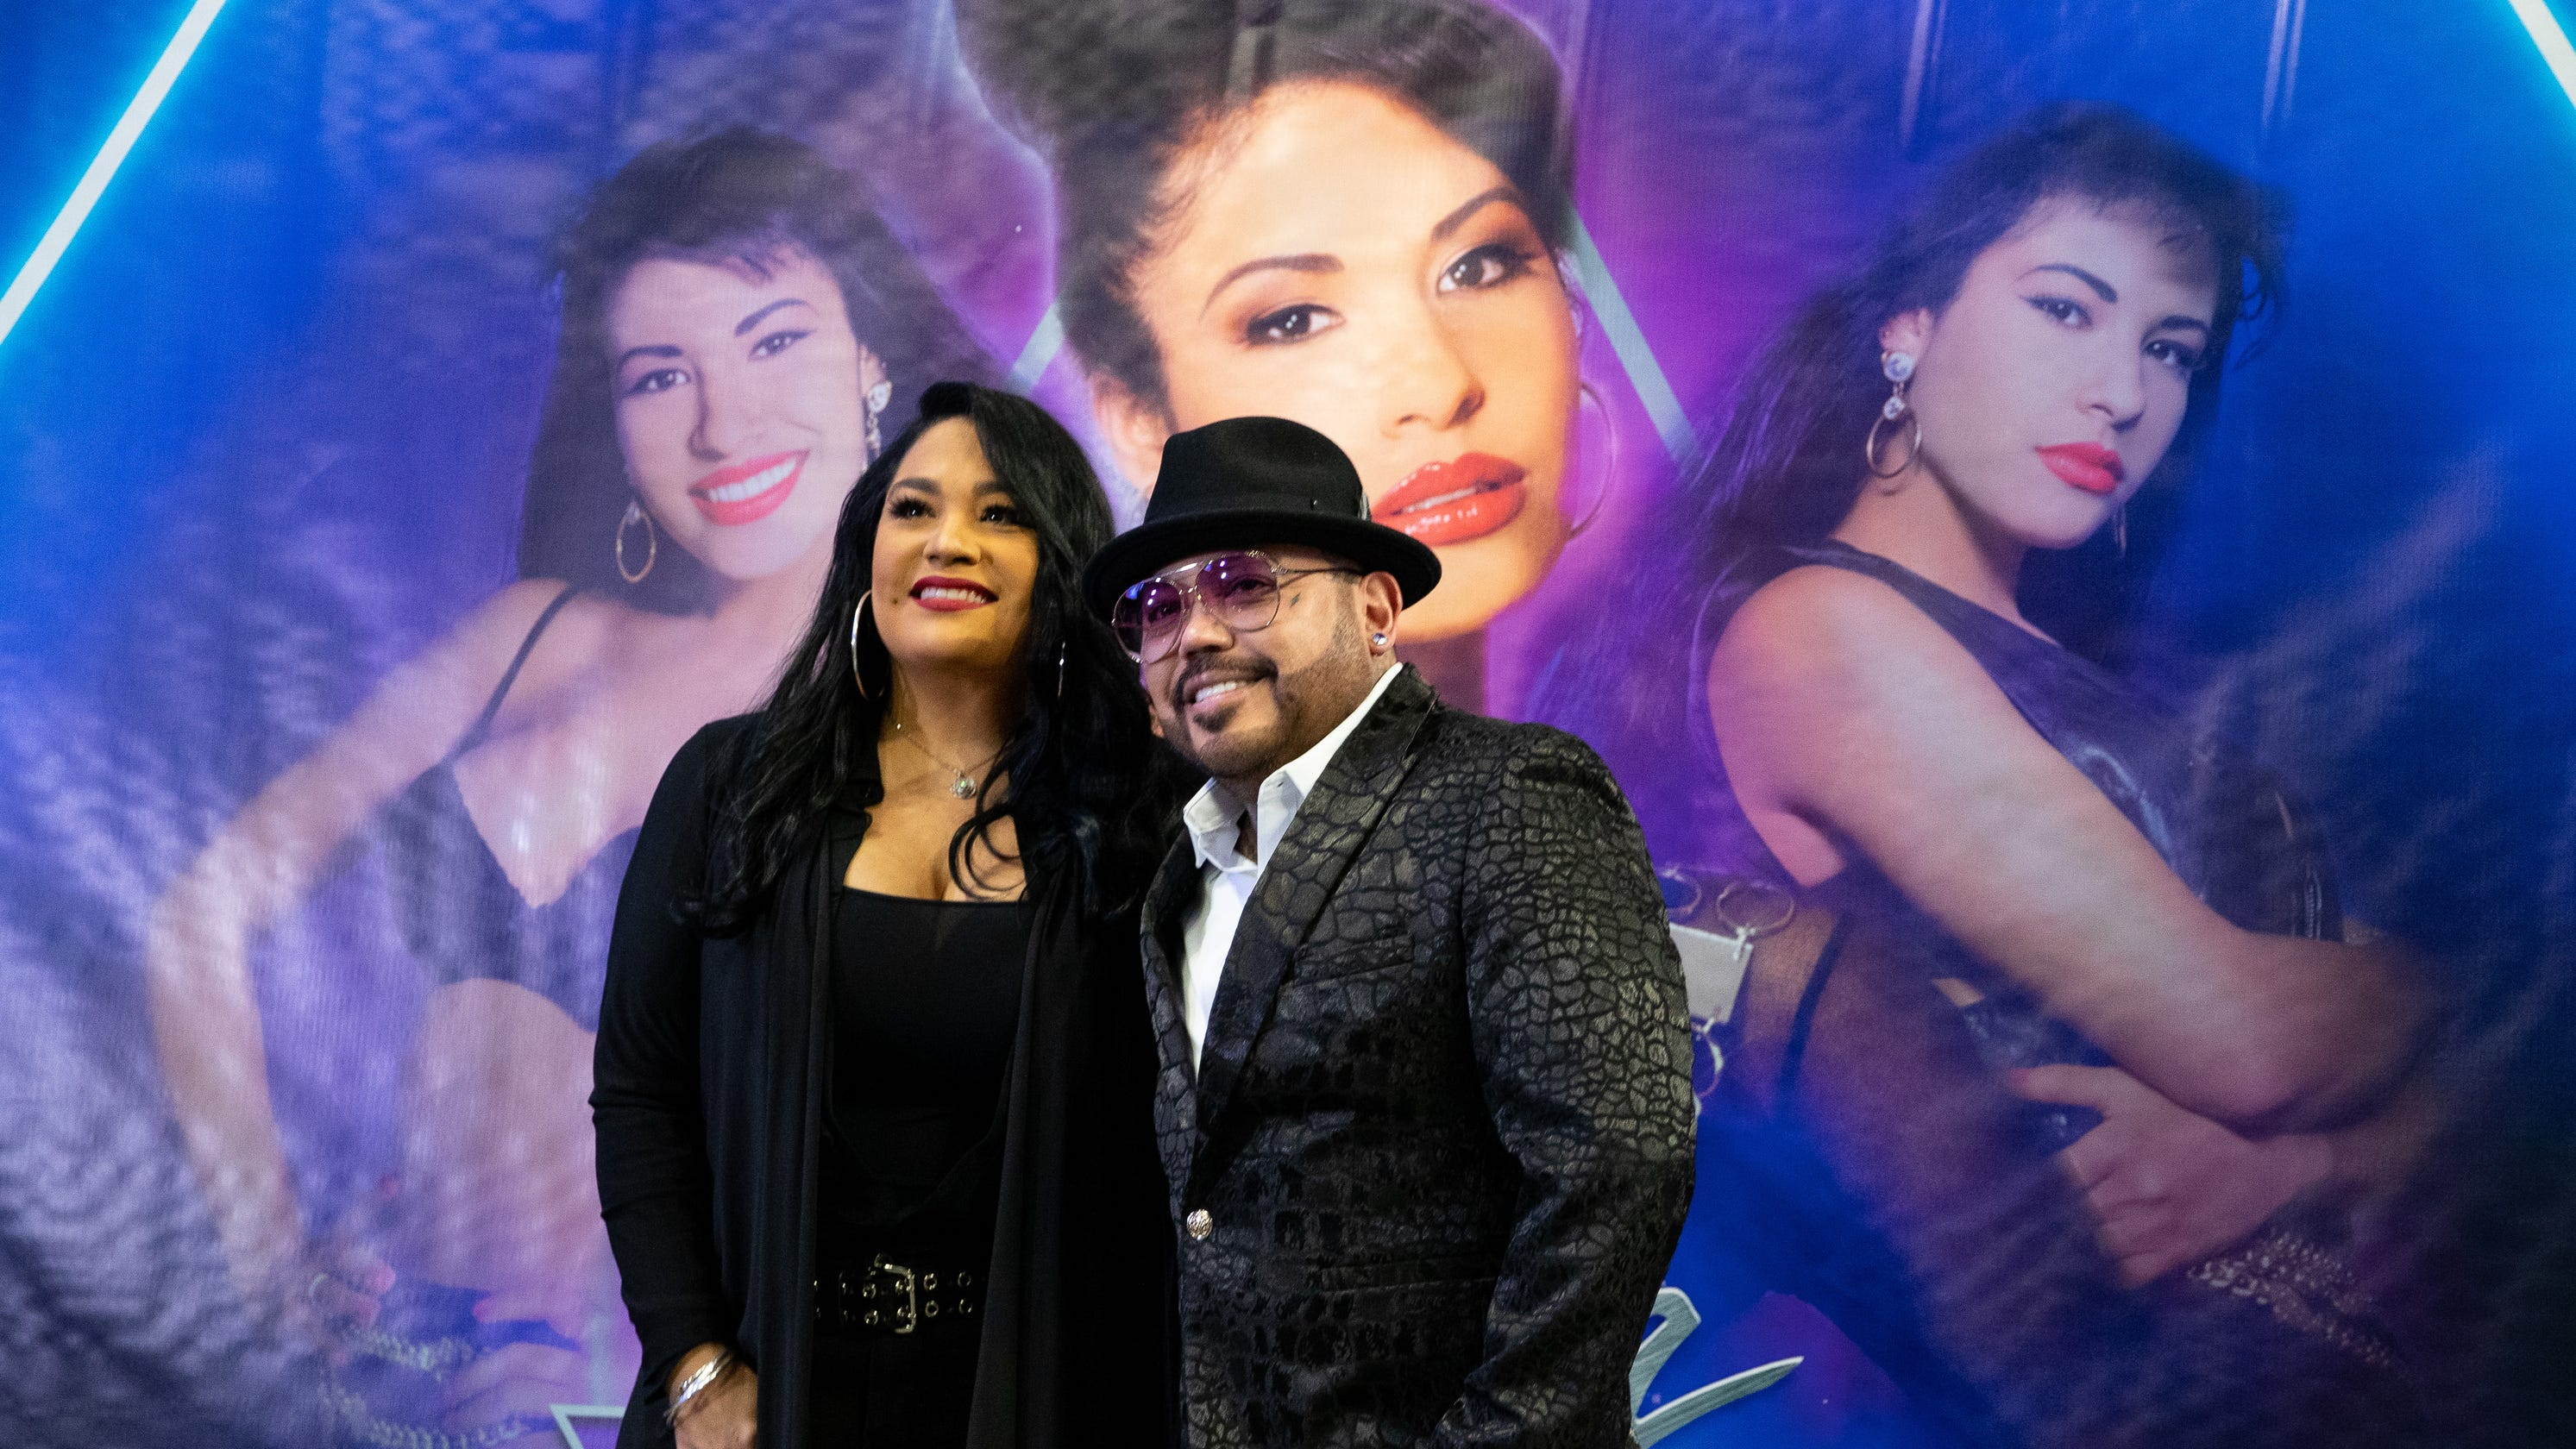 Selena Xxv Set To Honor The Queen Of Tejano With